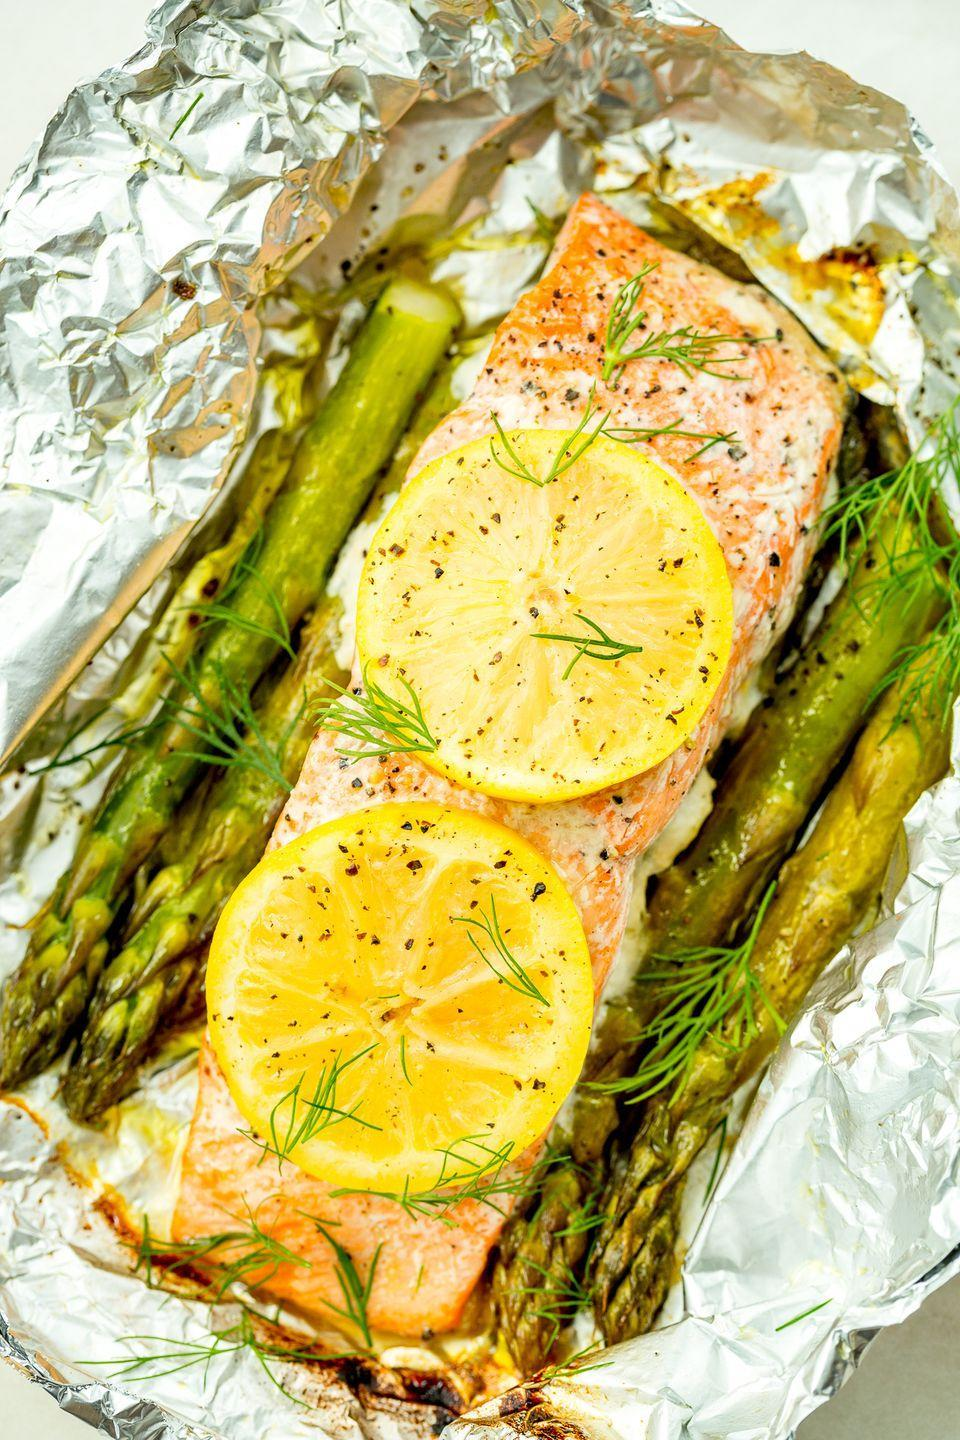 "<p>These super-fresh salmon grill packs make clean-up a breeze.</p><p>Get the recipe from <a href=""https://www.delish.com/cooking/recipe-ideas/recipes/a47373/foil-pack-grilled-salmon-with-lemony-asparagus-recipe/"" rel=""nofollow noopener"" target=""_blank"" data-ylk=""slk:Delish"" class=""link rapid-noclick-resp"">Delish</a>.</p>"